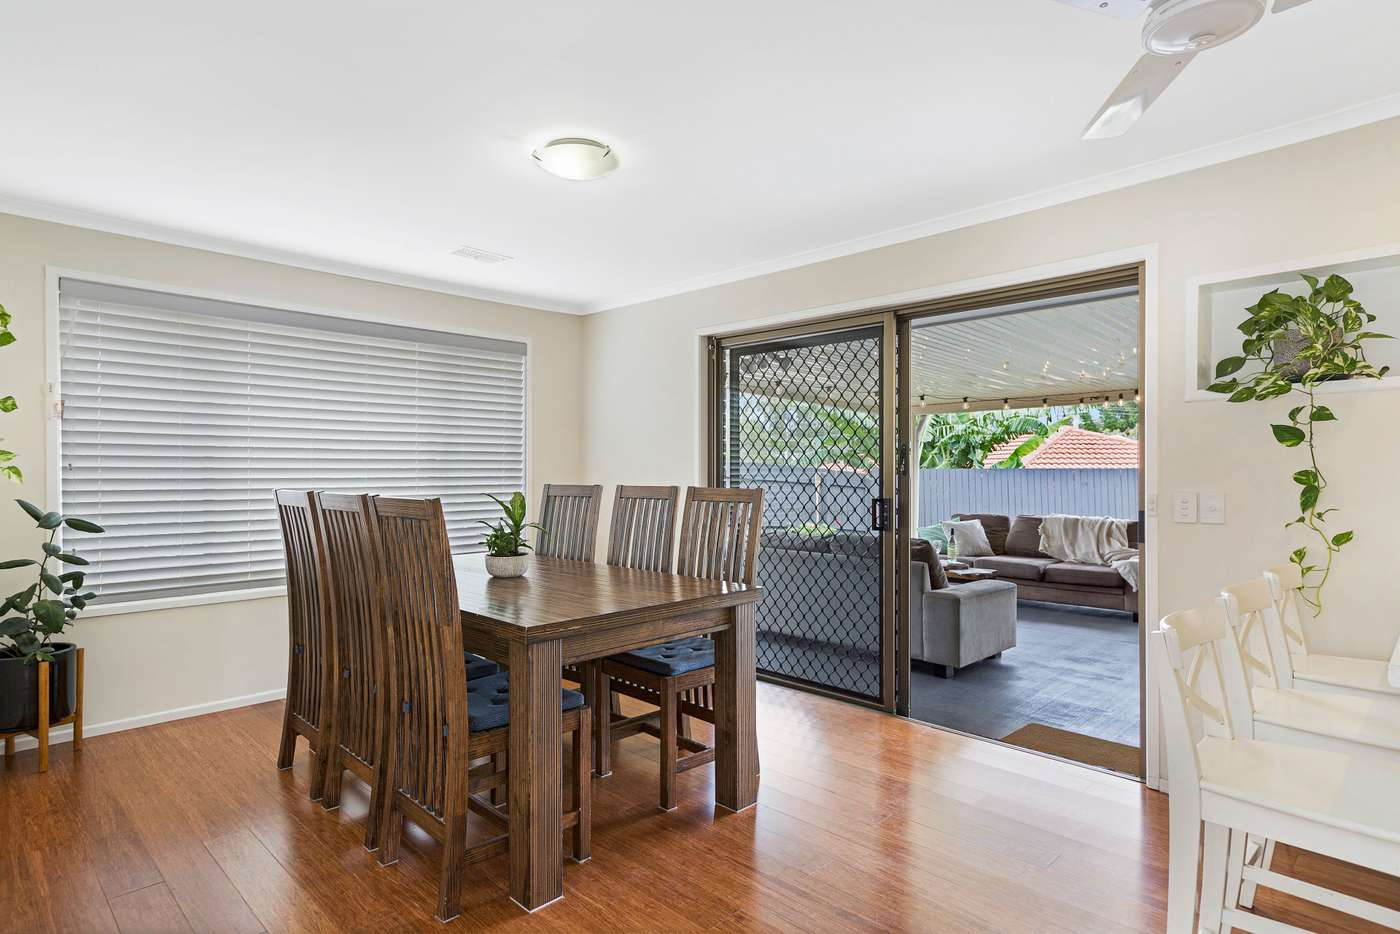 Seventh view of Homely house listing, 4 Barrine Court, Petrie QLD 4502